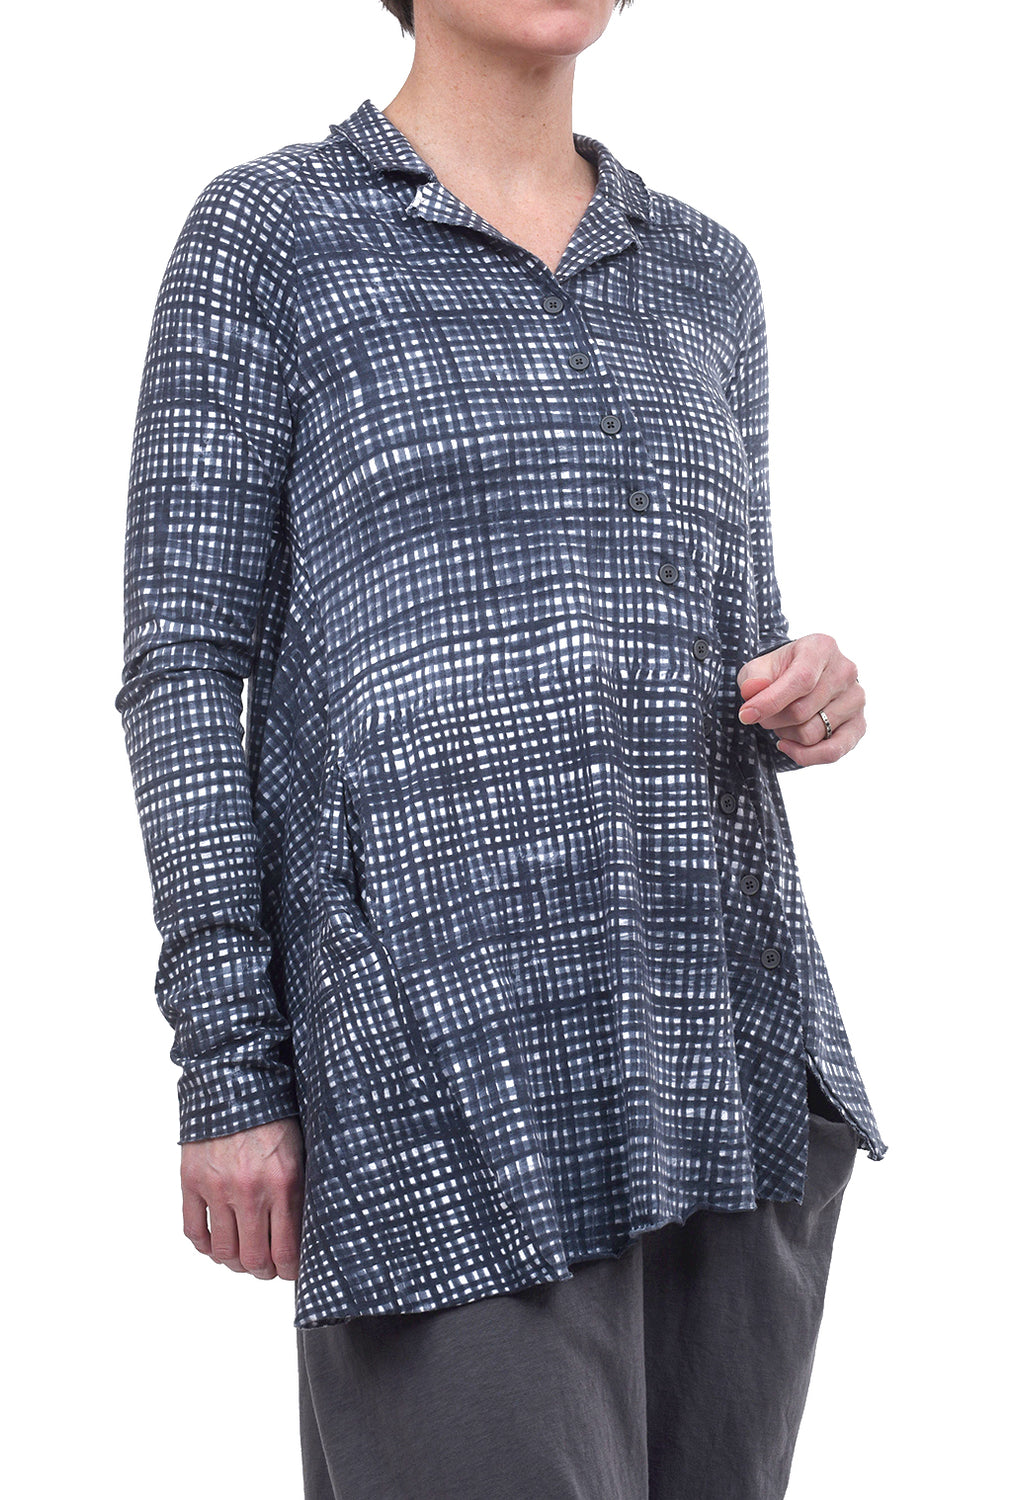 Rundholz Black Label Sketch Check Asym Jacket, Rock Gray Print